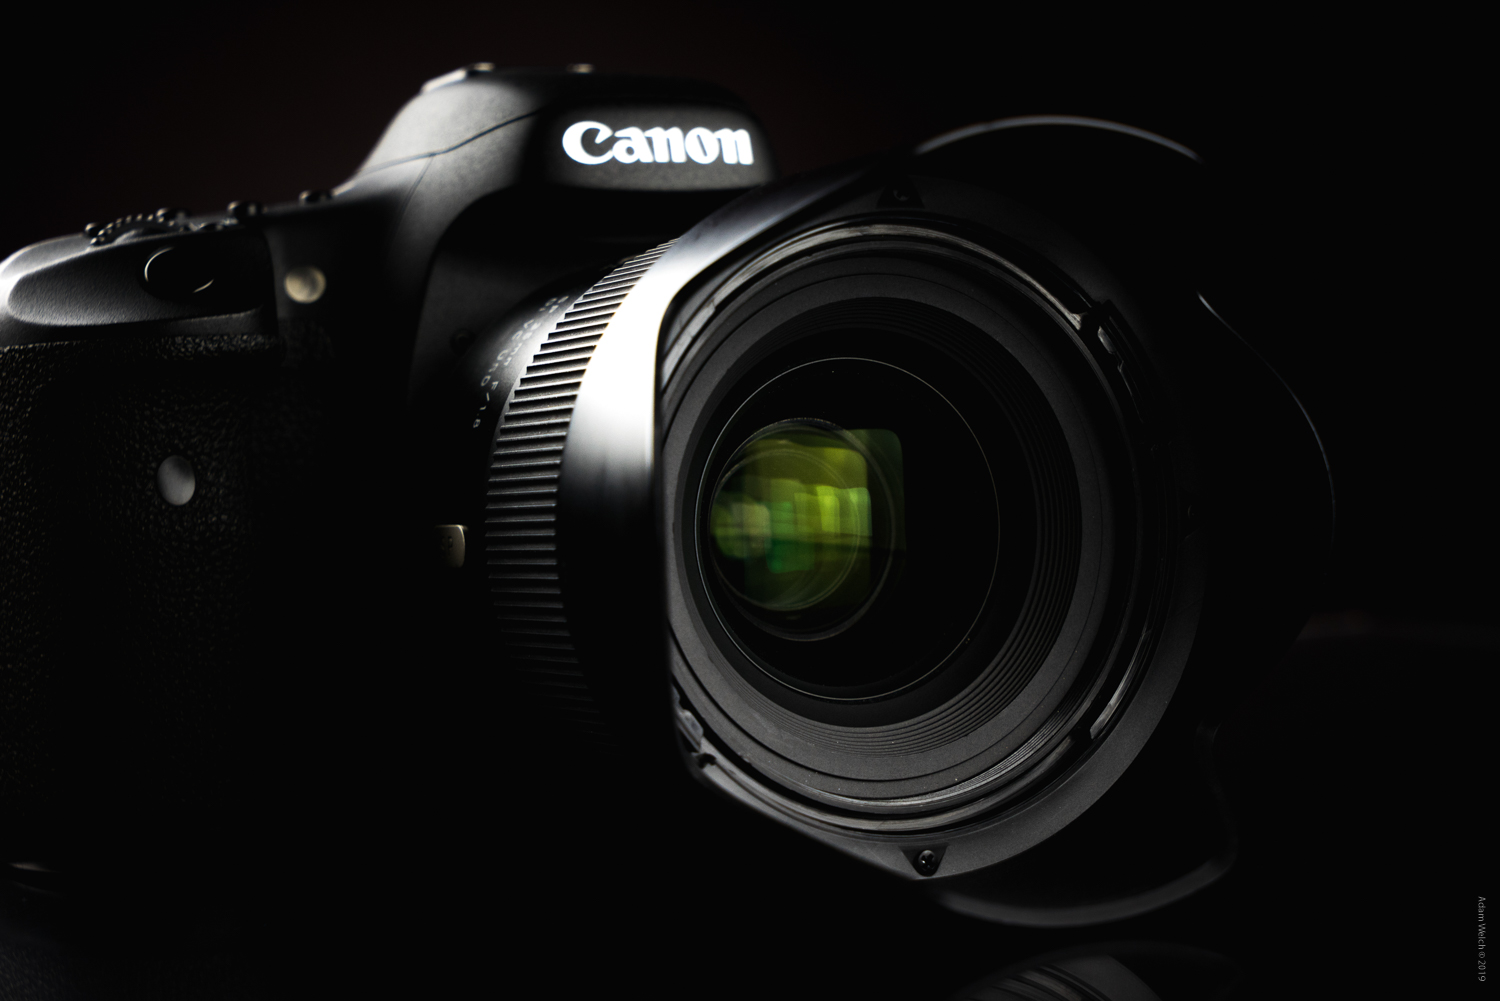 4-signs-its-not-time-to-upgrade-your-camera-3.jpg